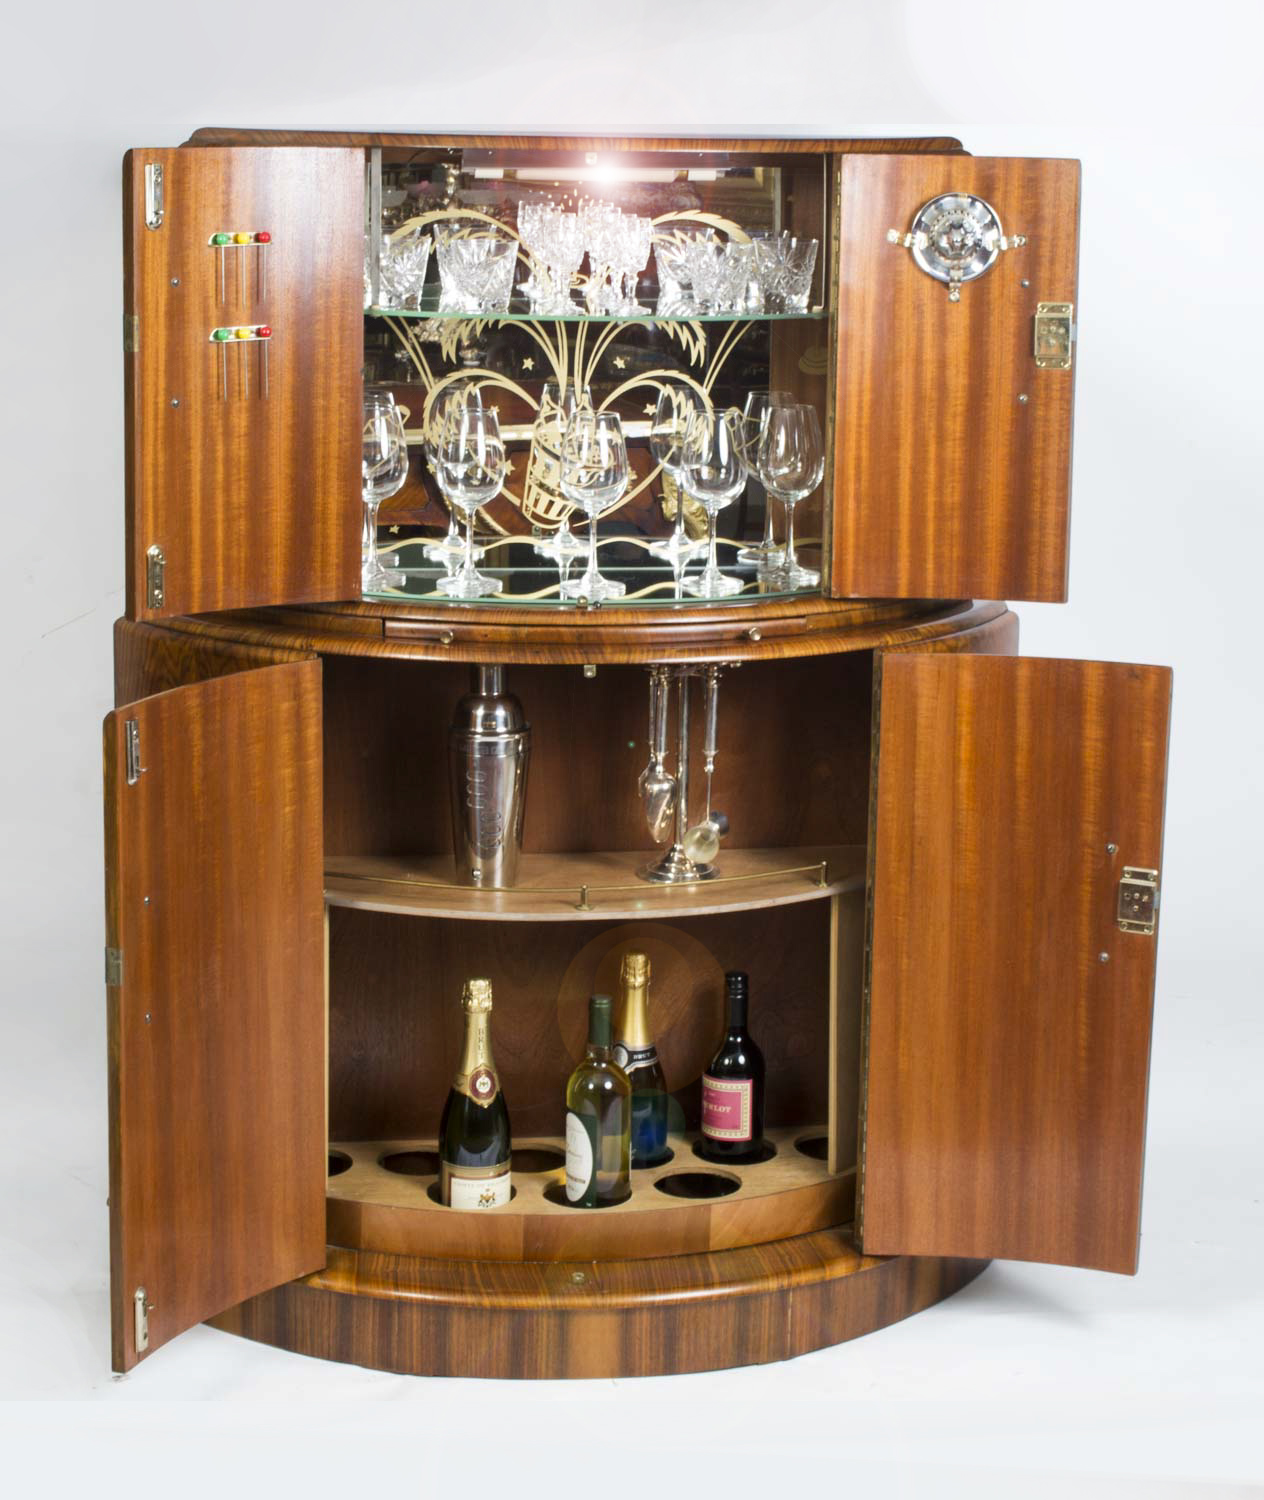 regent antiques cabinets antique art deco burr walnut cocktail bar. Black Bedroom Furniture Sets. Home Design Ideas